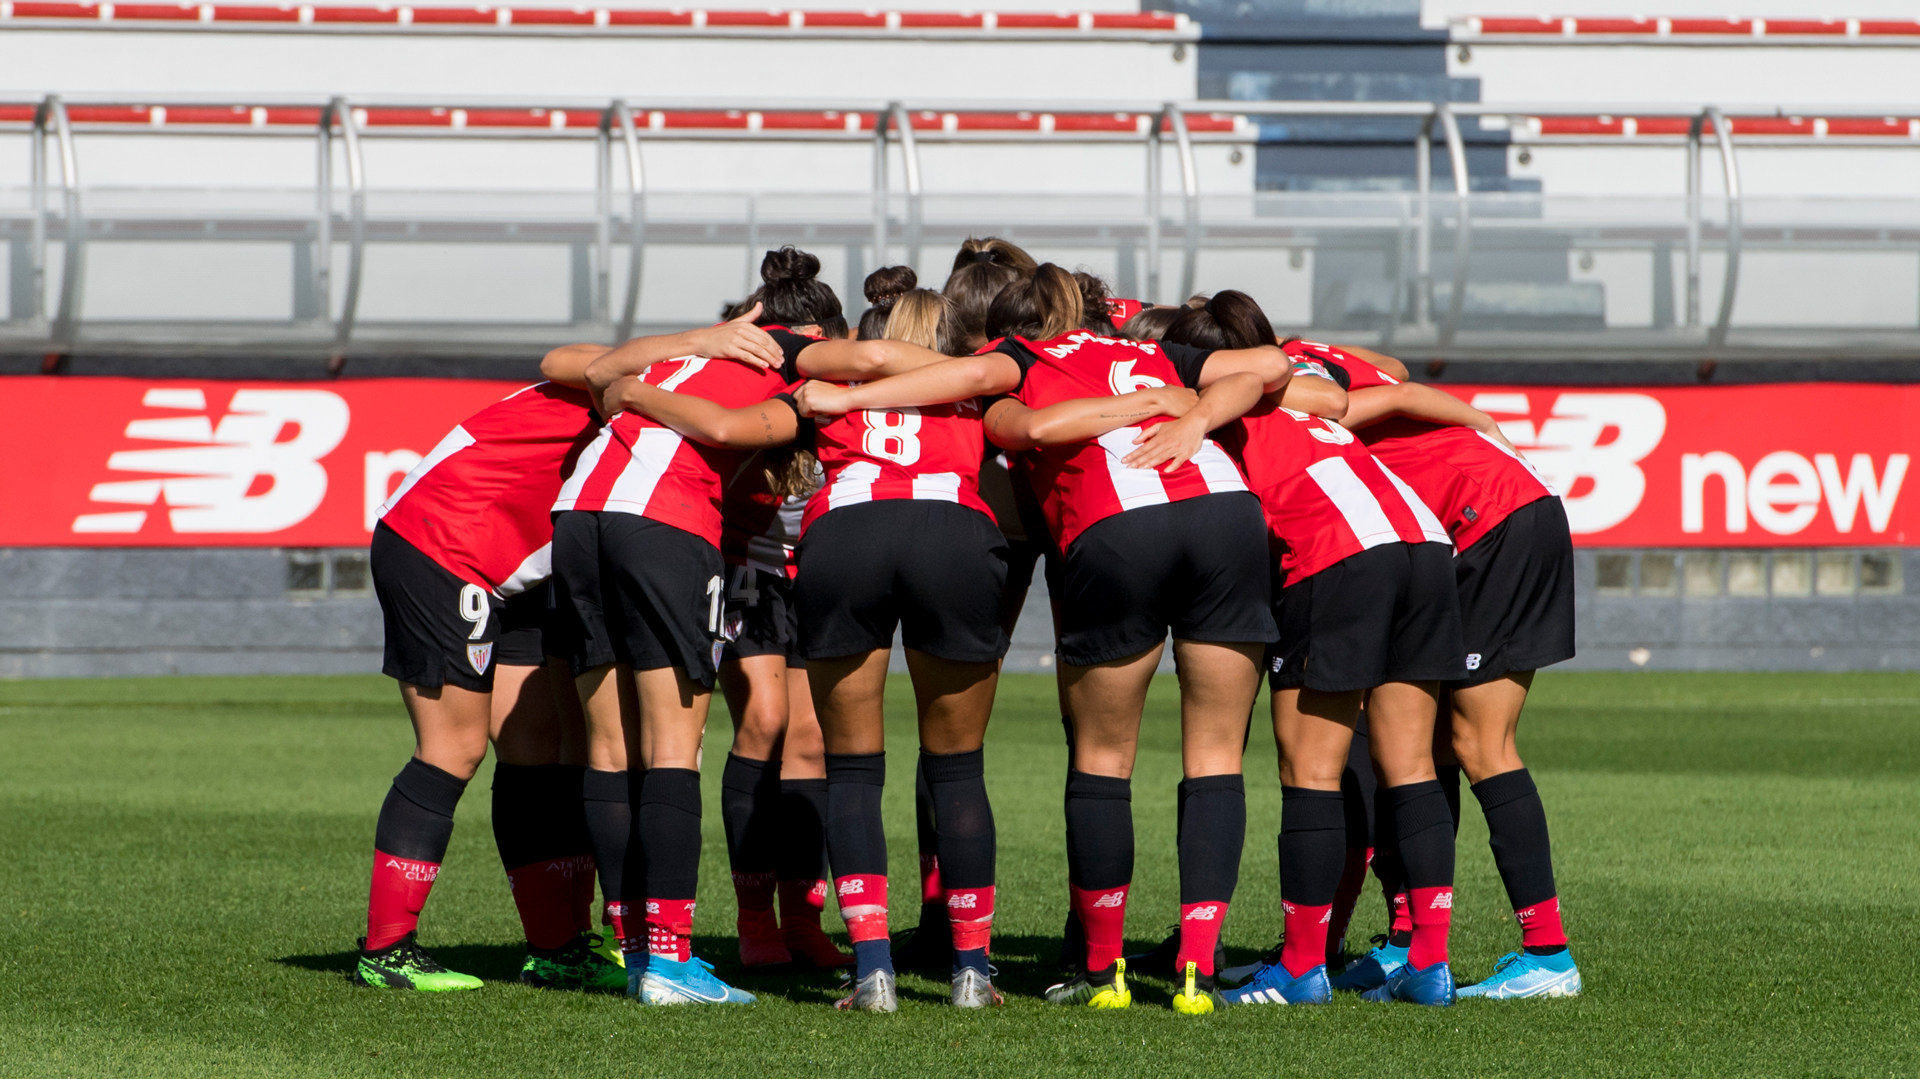 Live on Youtube: Athletic Club Women vs Deportivo Alavés